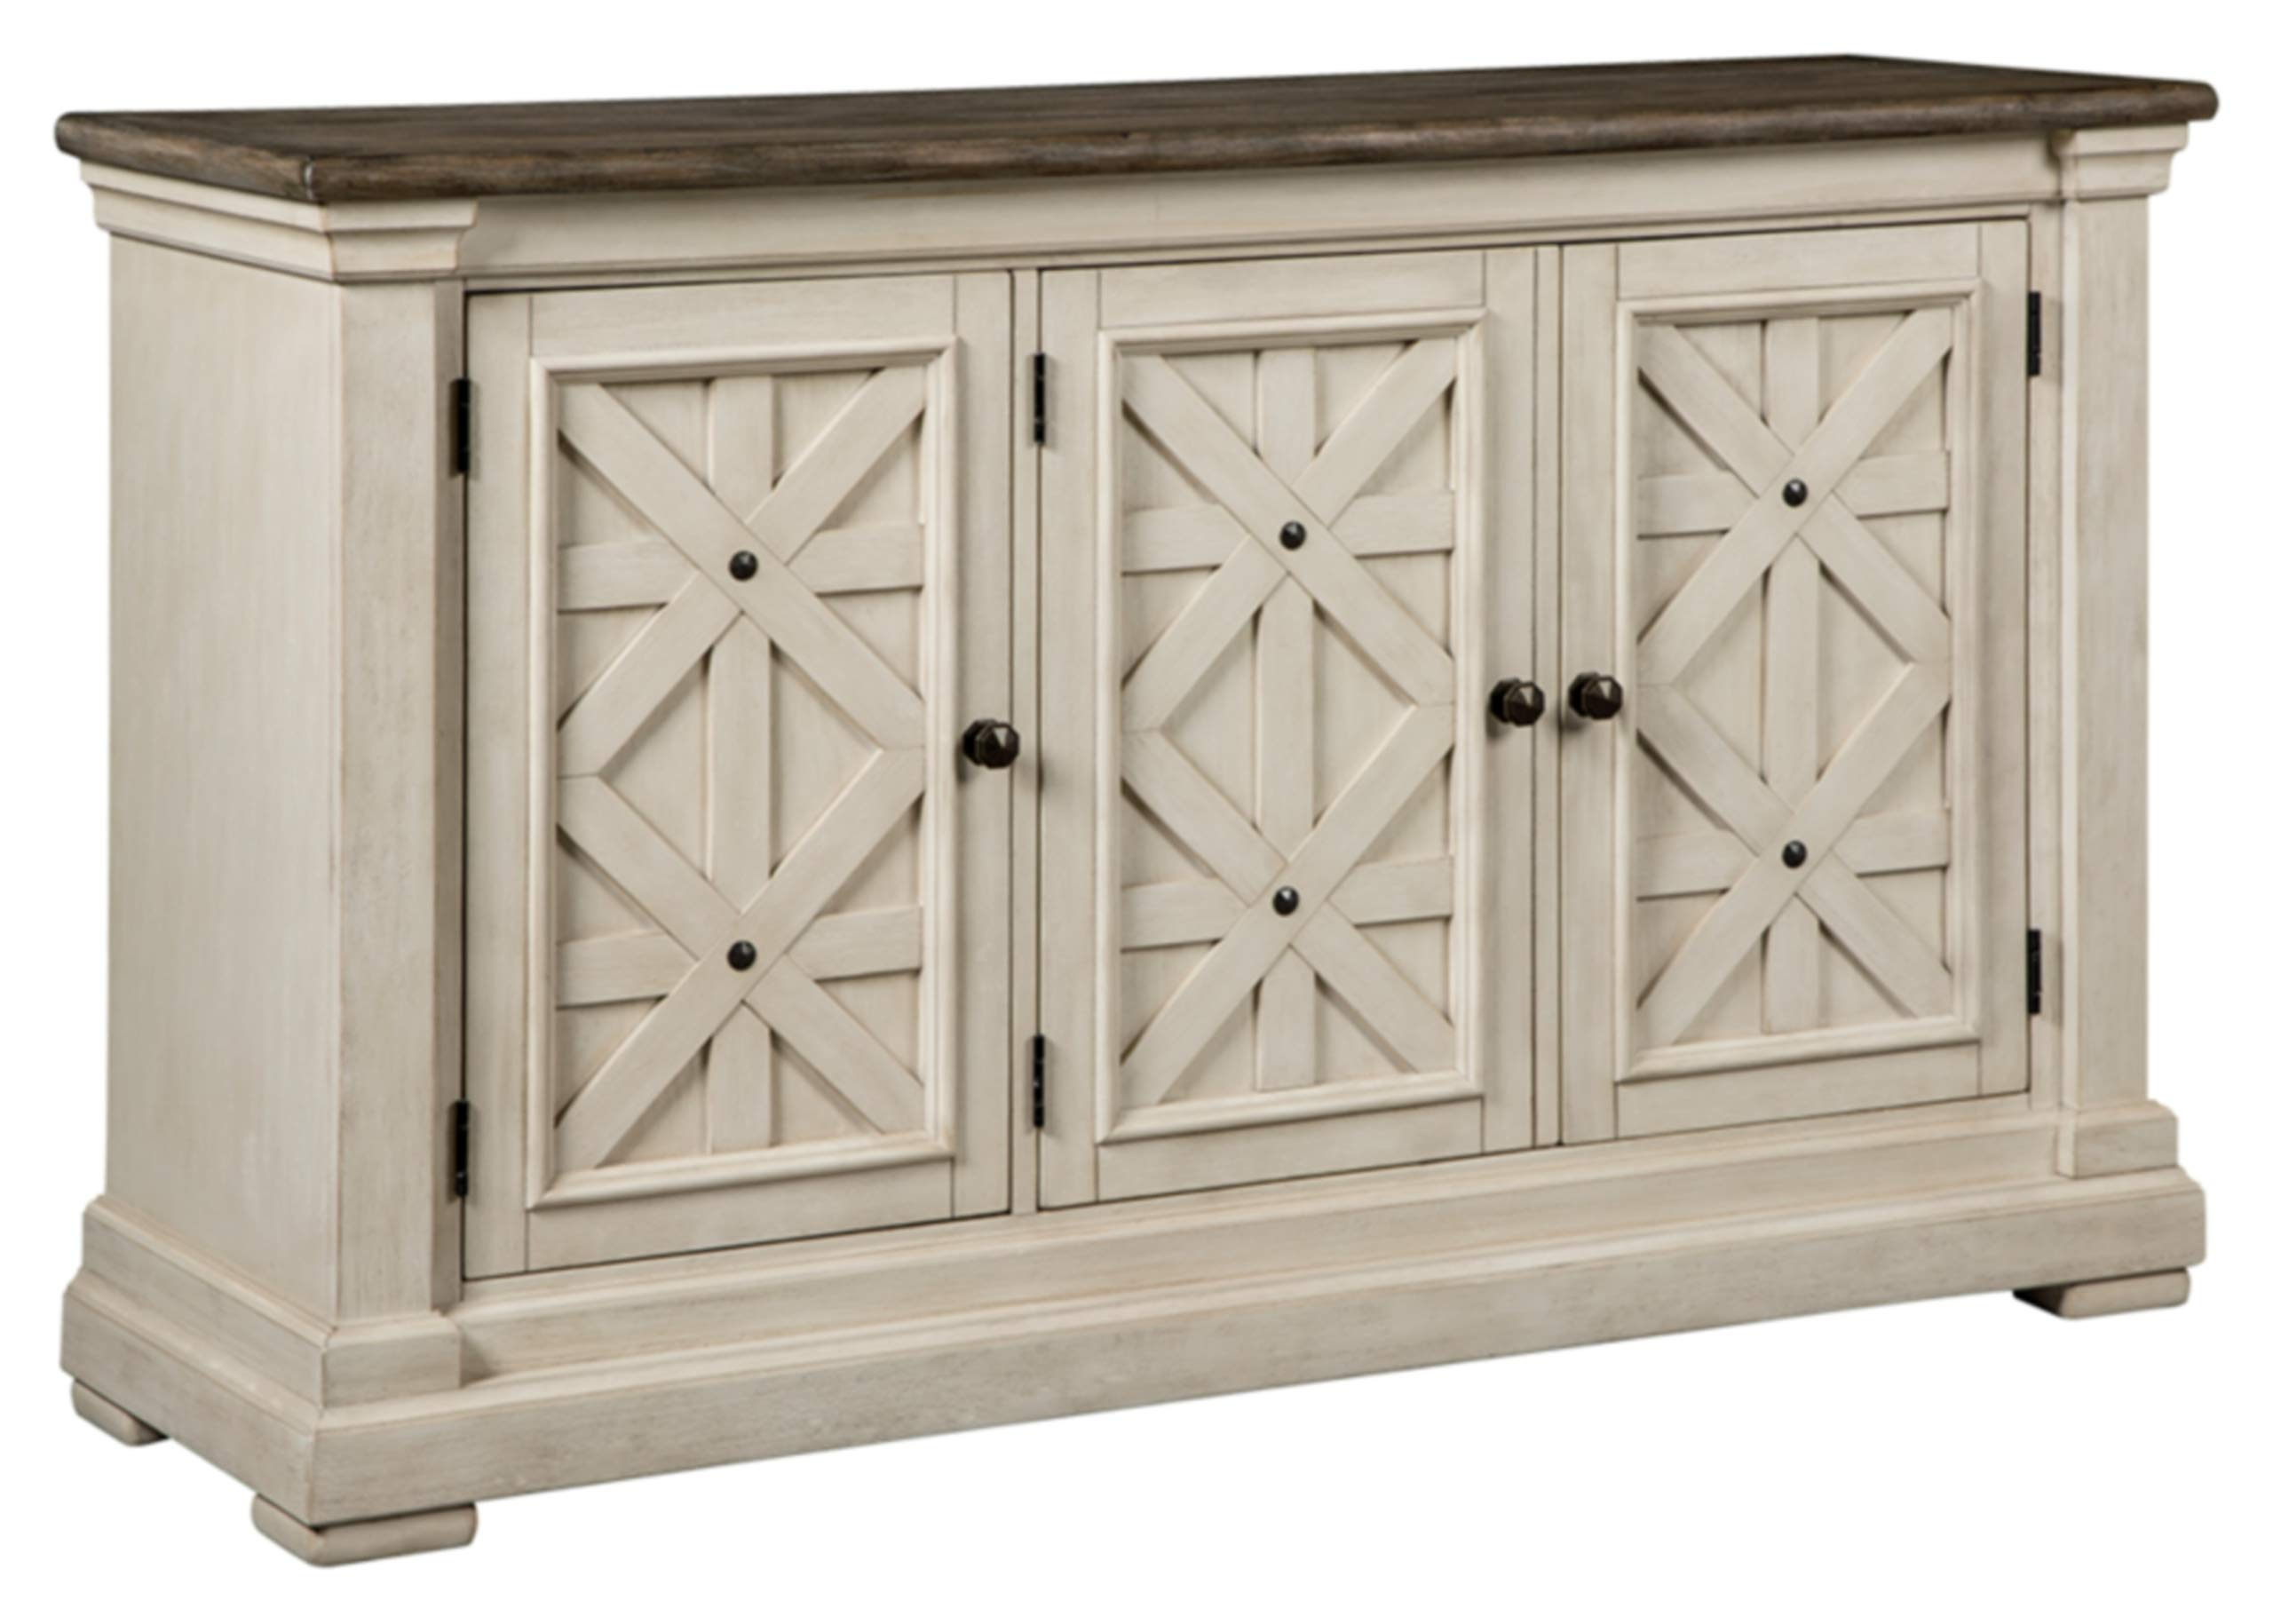 Ashley Furniture Signature Design - Bolanburg Dining Room Server - Vintage Casual - Weathered Oak/Antique White by Signature Design by Ashley (Image #1)